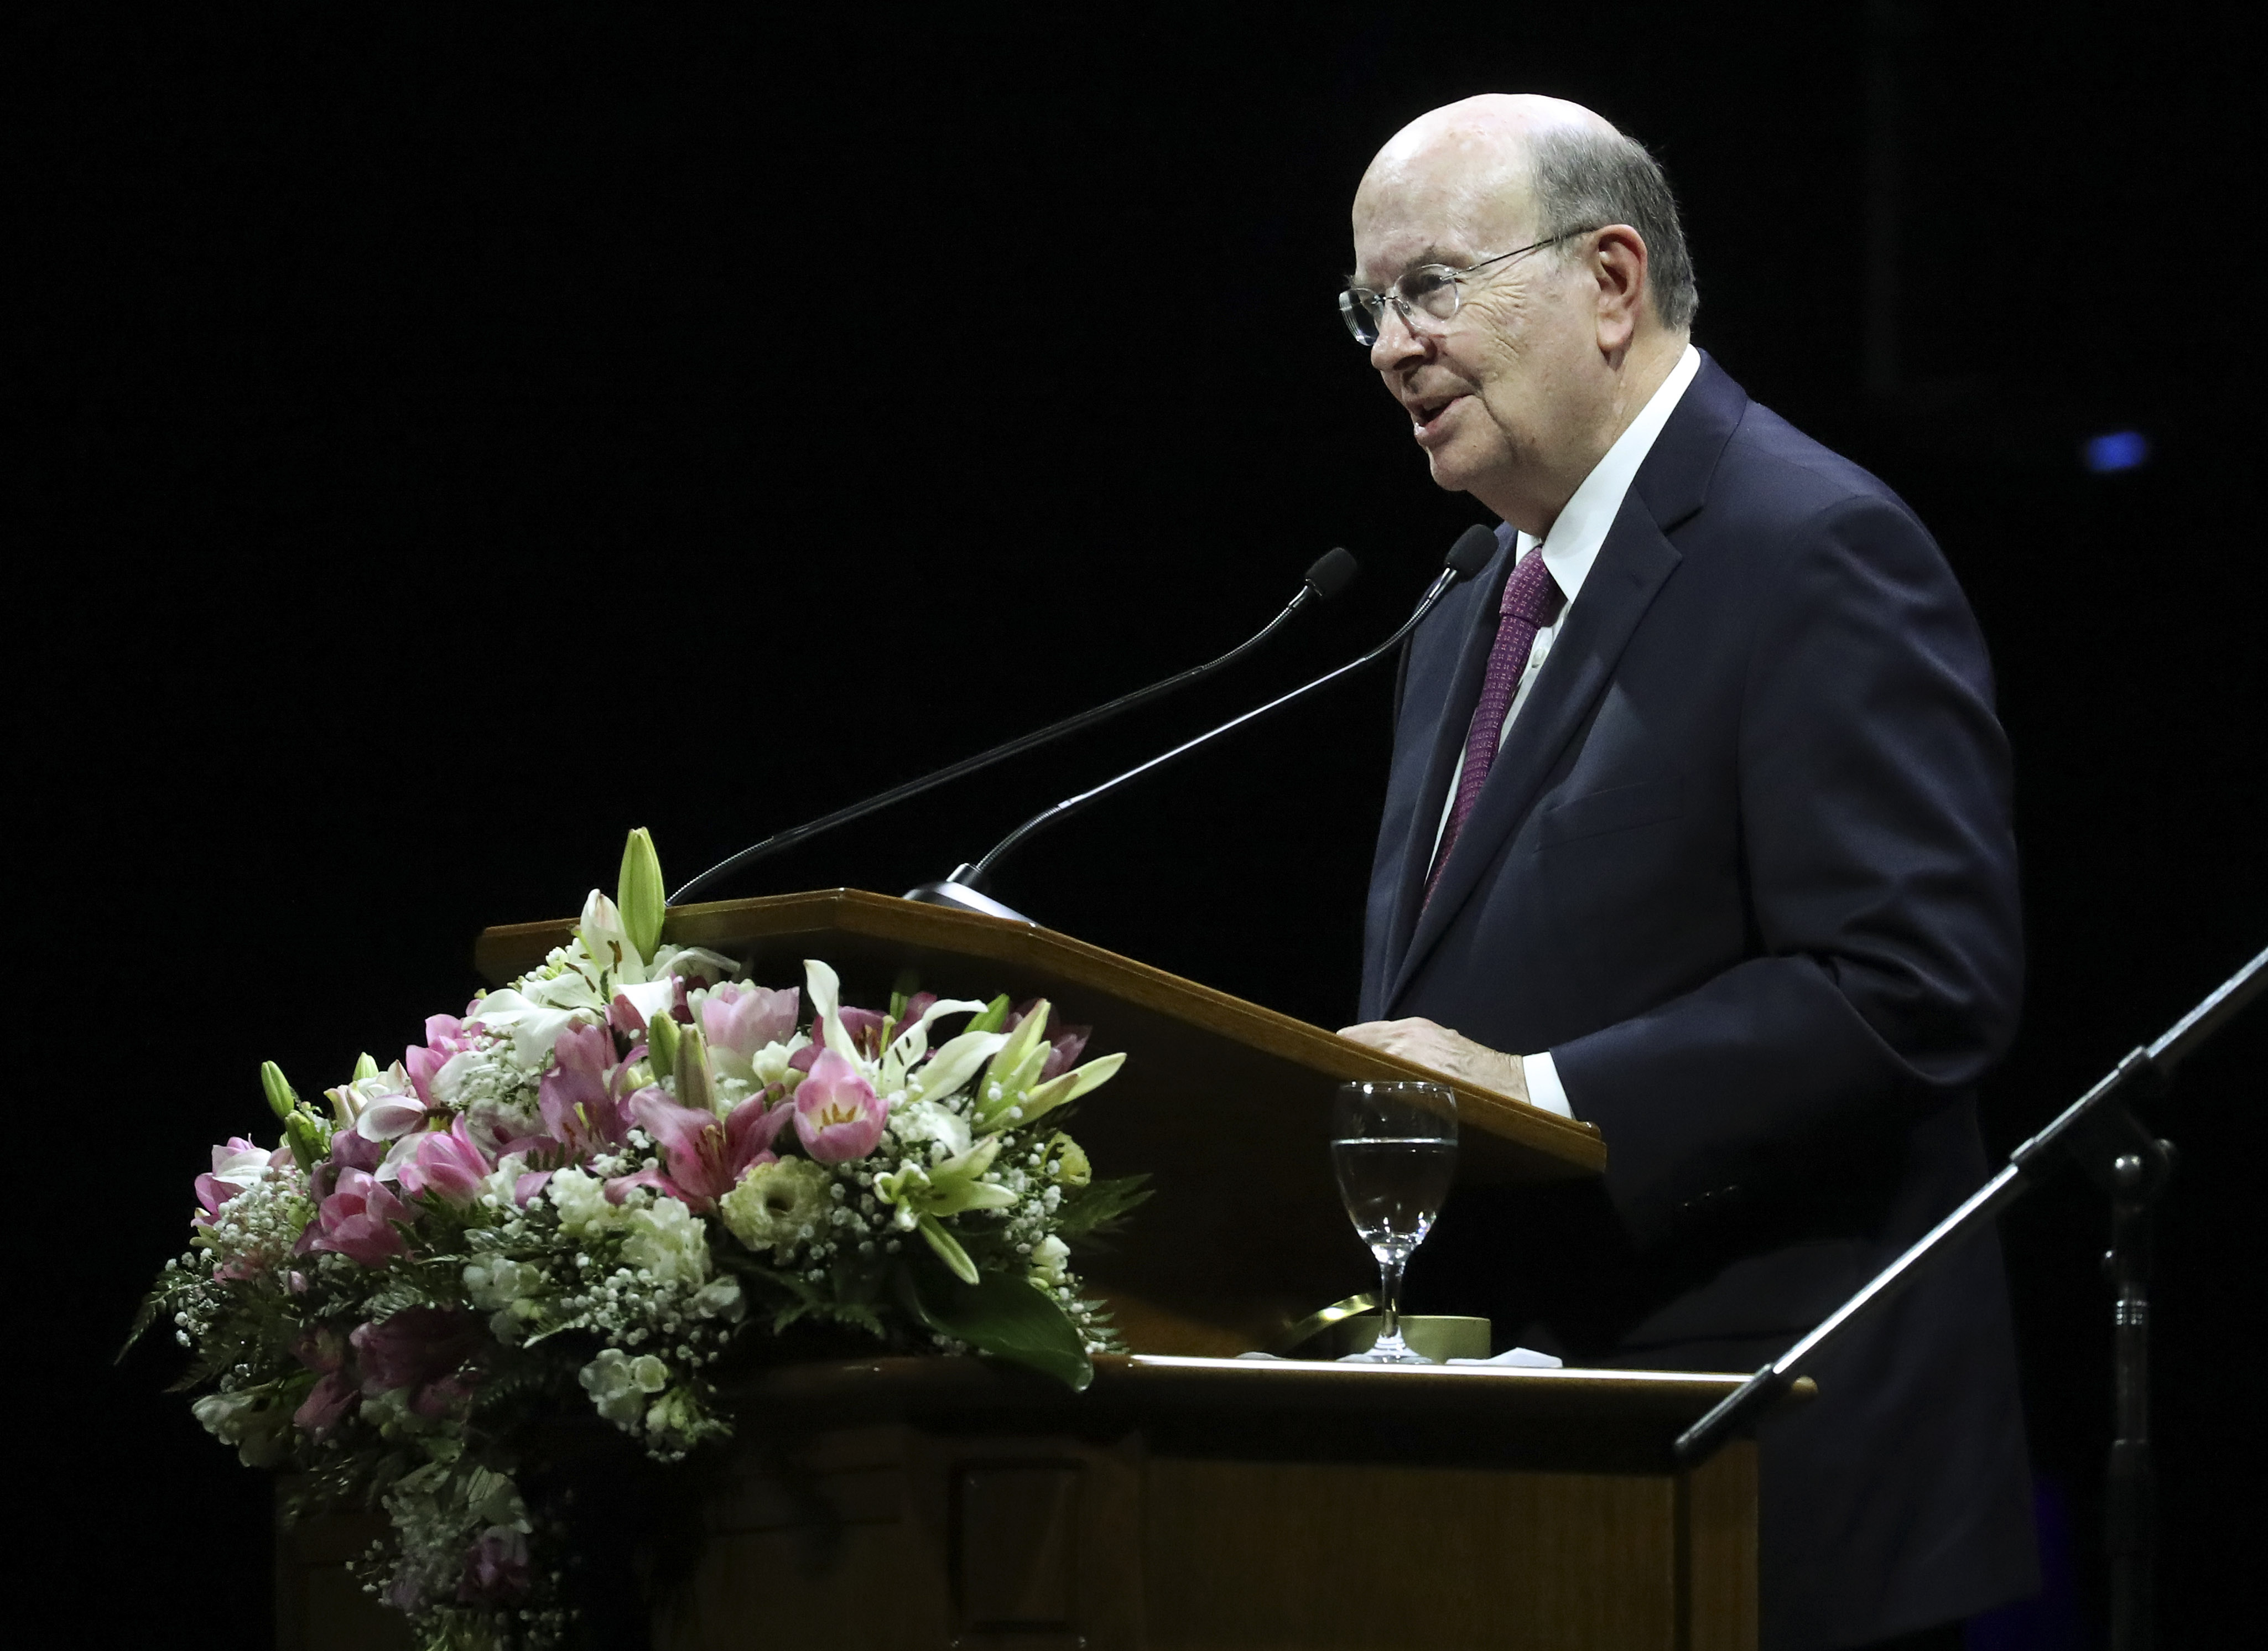 Elder Quentin L. Cook, Quorum of the Twelve Apostles of The Church of Jesus Christ of Latter-day Saints, speaks during a devotional in Buenos Aires, Argentina, on Wednesday, Aug. 28, 2019.